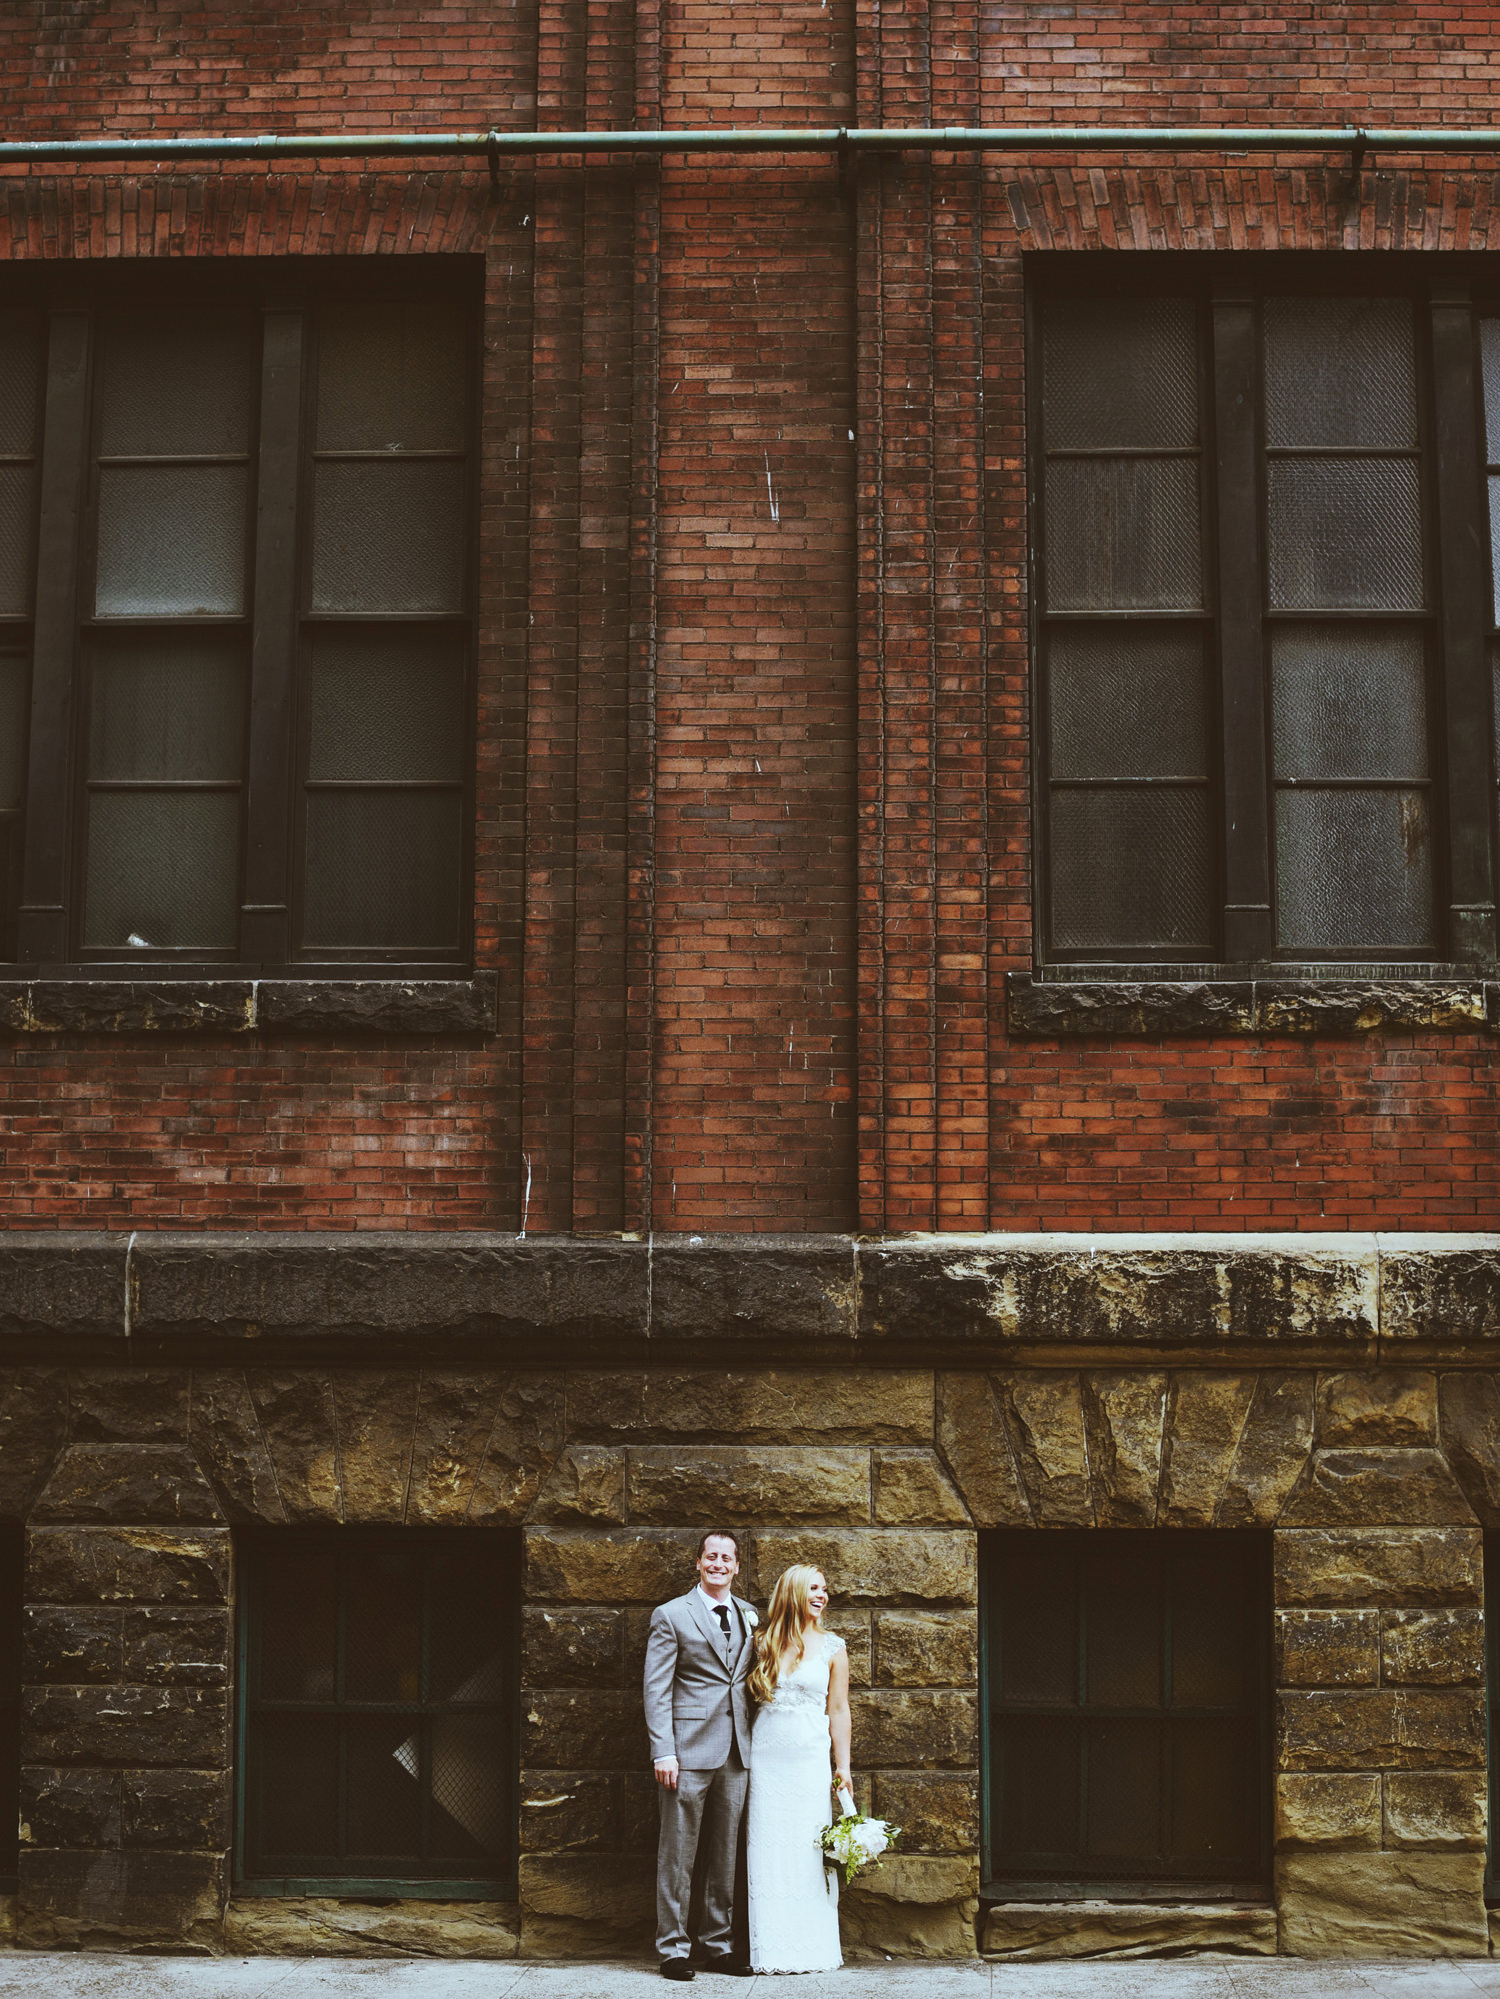 ryan-flynn-best-wedding-photography-2015-seattle-film-photographer-0130.JPG